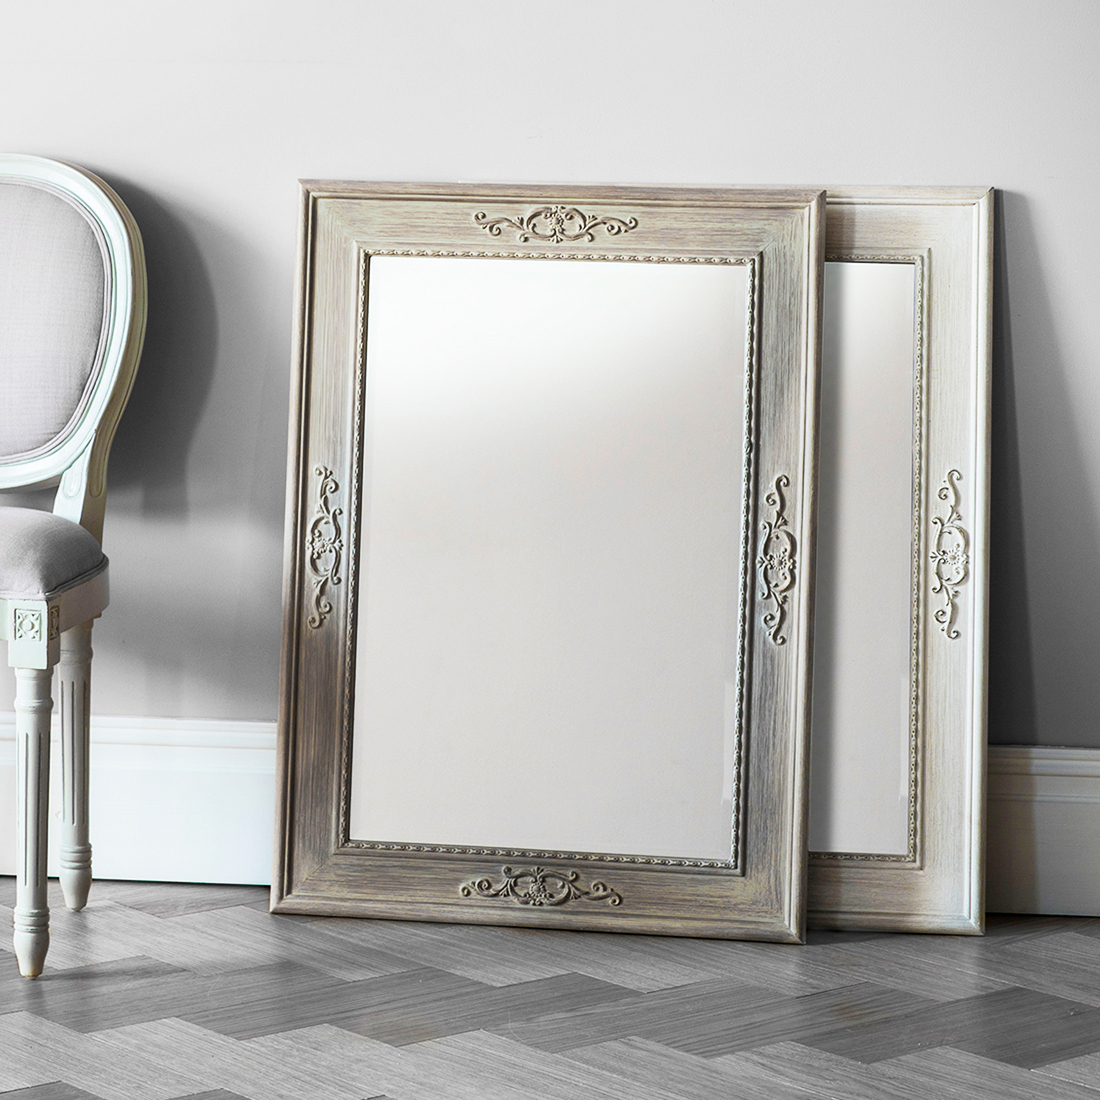 Distressed White Wall Mirrors With Regard To Well Liked Decorative Rectangular Wooden Wall Mirrors – White Or Limed Oak (View 7 of 20)